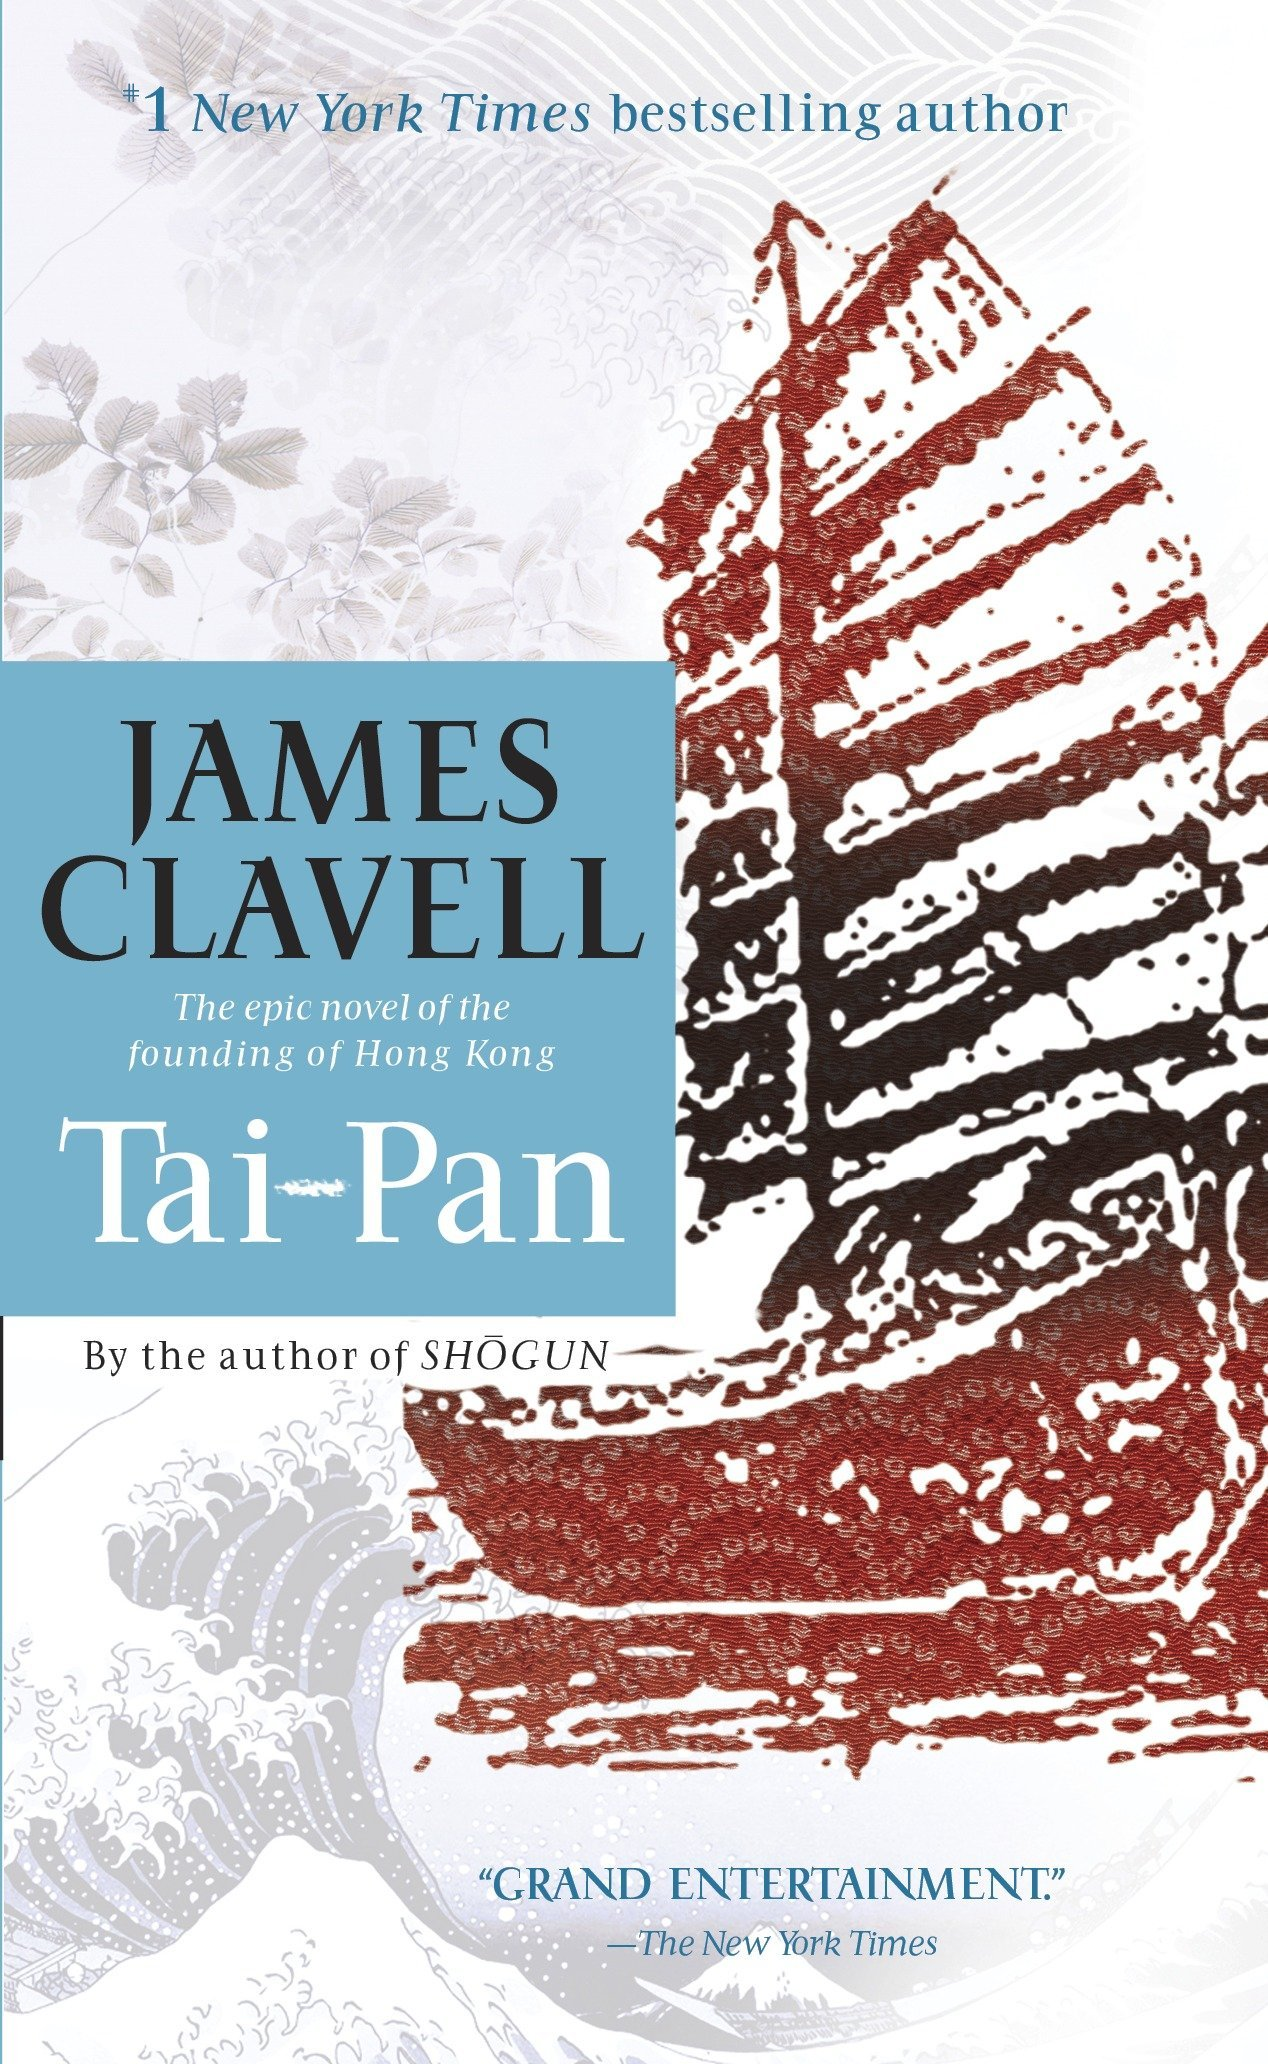 Amazon.com: Tai-Pan (Asian Saga) (9780440184621): James Clavell: Books